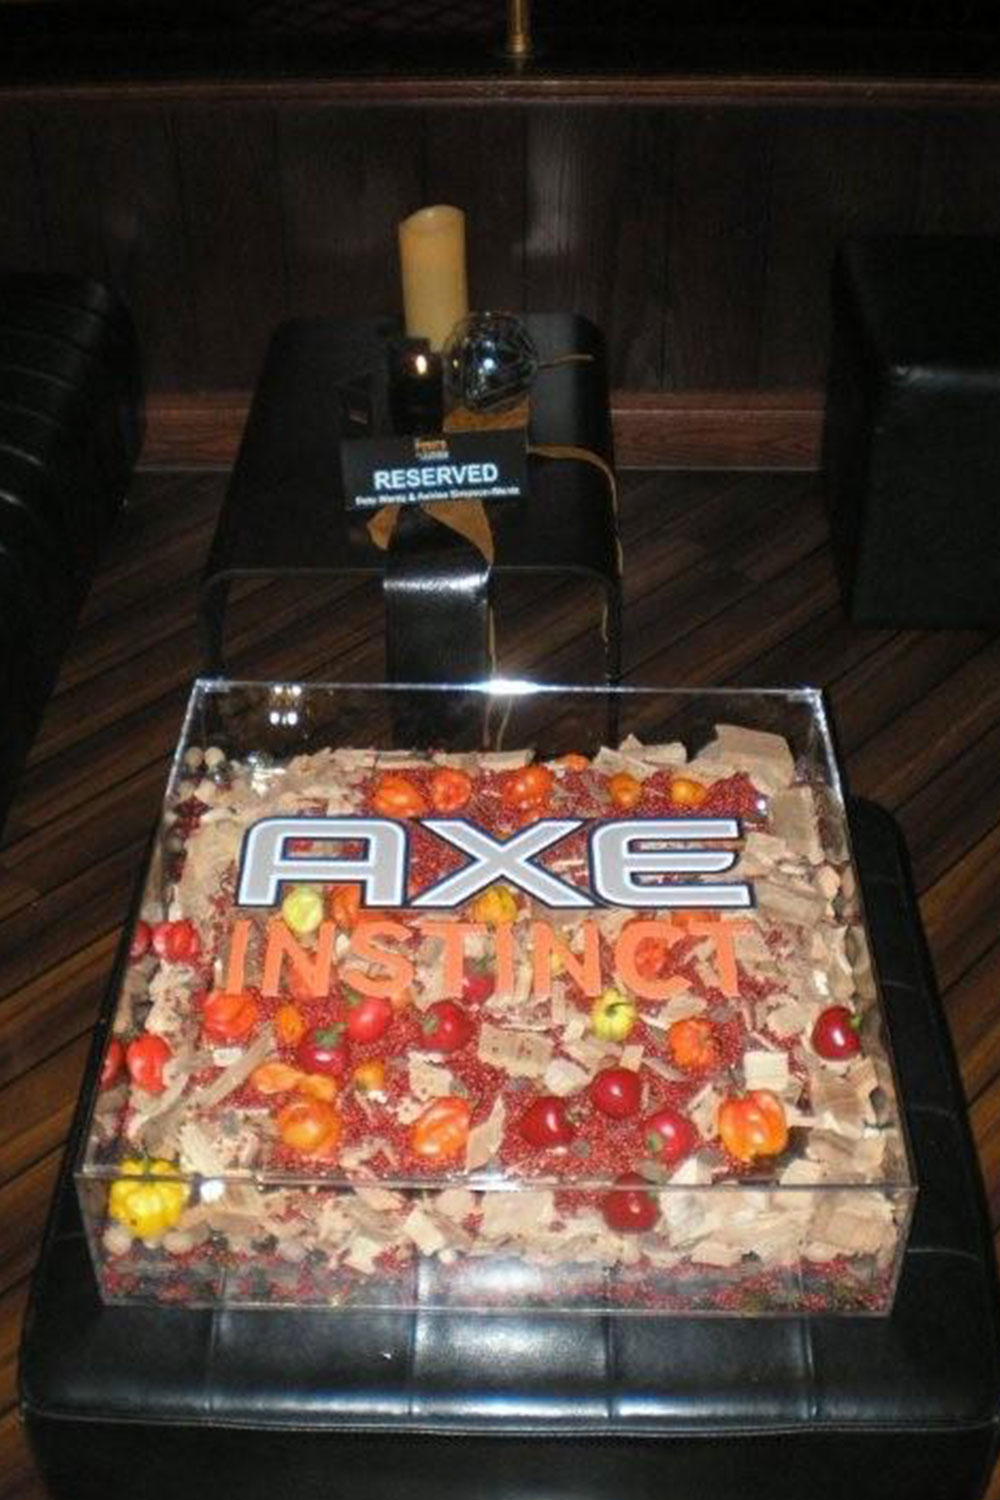 toast-axe-instinct-center-piece-table-party-10twelve.jpg